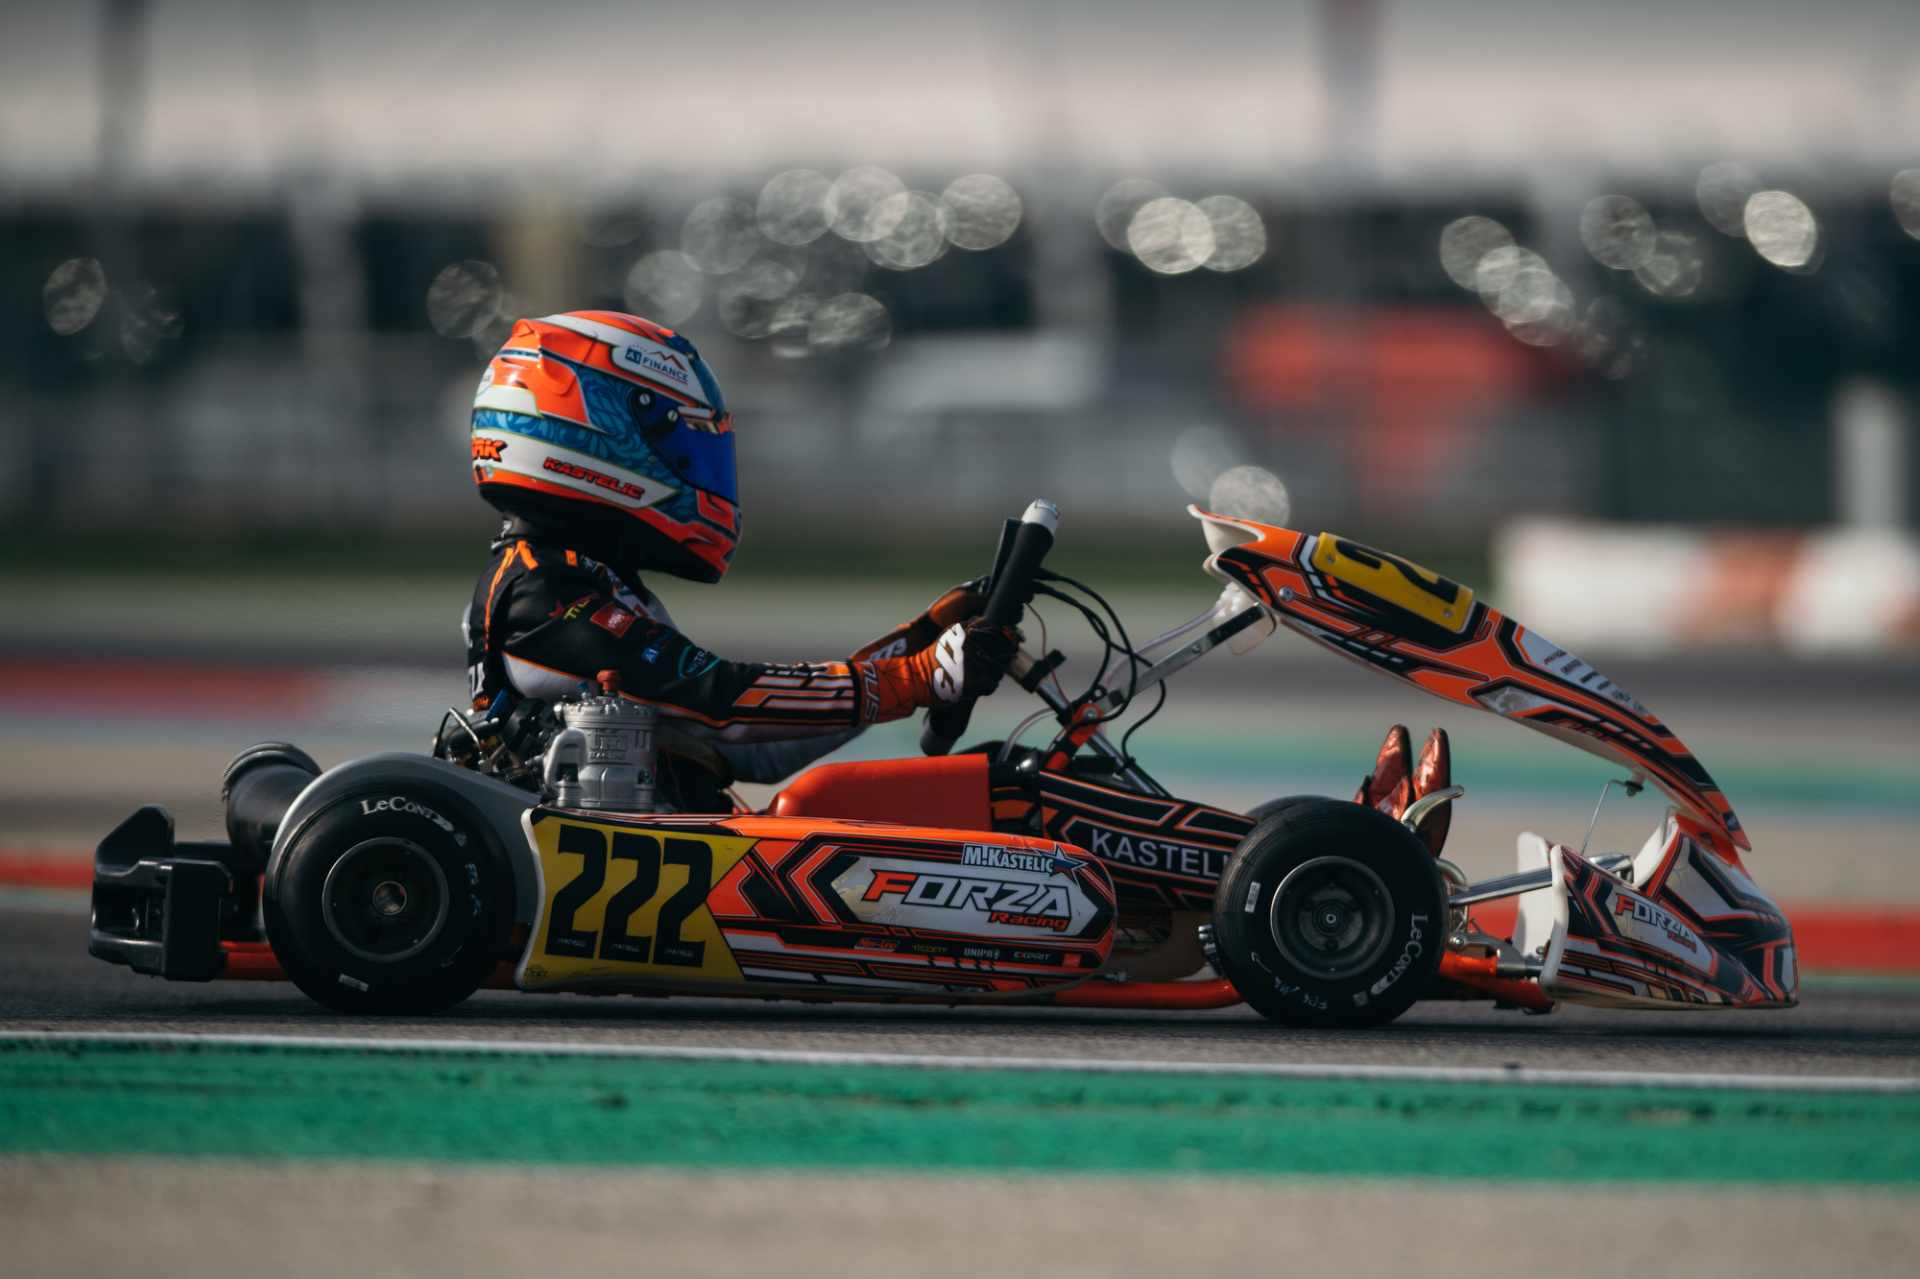 Constructive weekend for Mark Kastelic at Adria